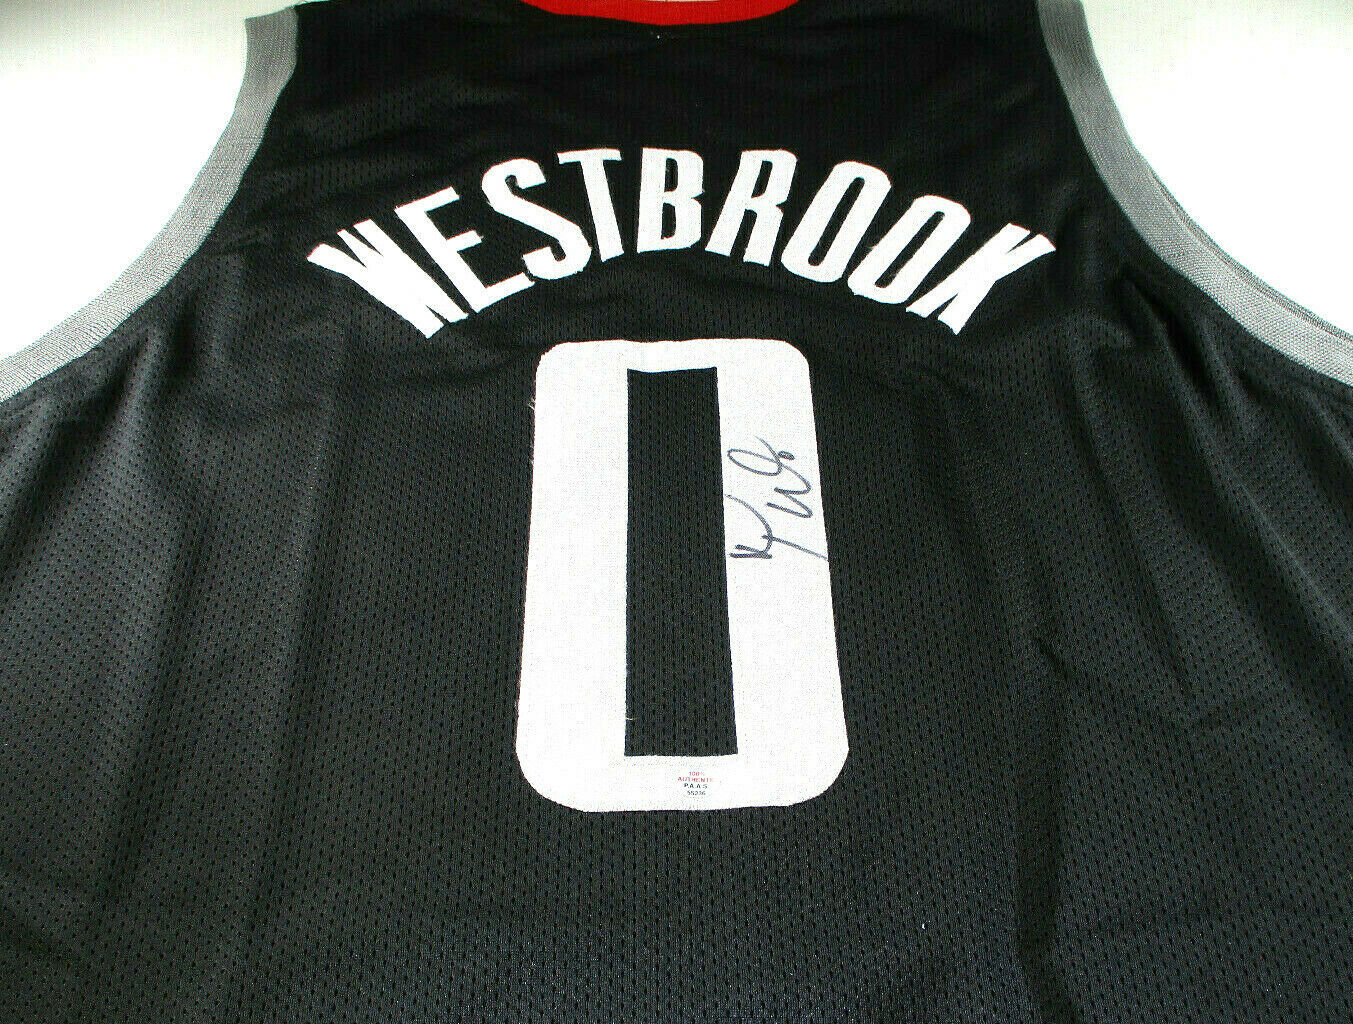 RUSSELL WESTBROOK / AUTOGRAPHED HOUSTON ROCKETS BLACK CUSTOM JERSEY / COA